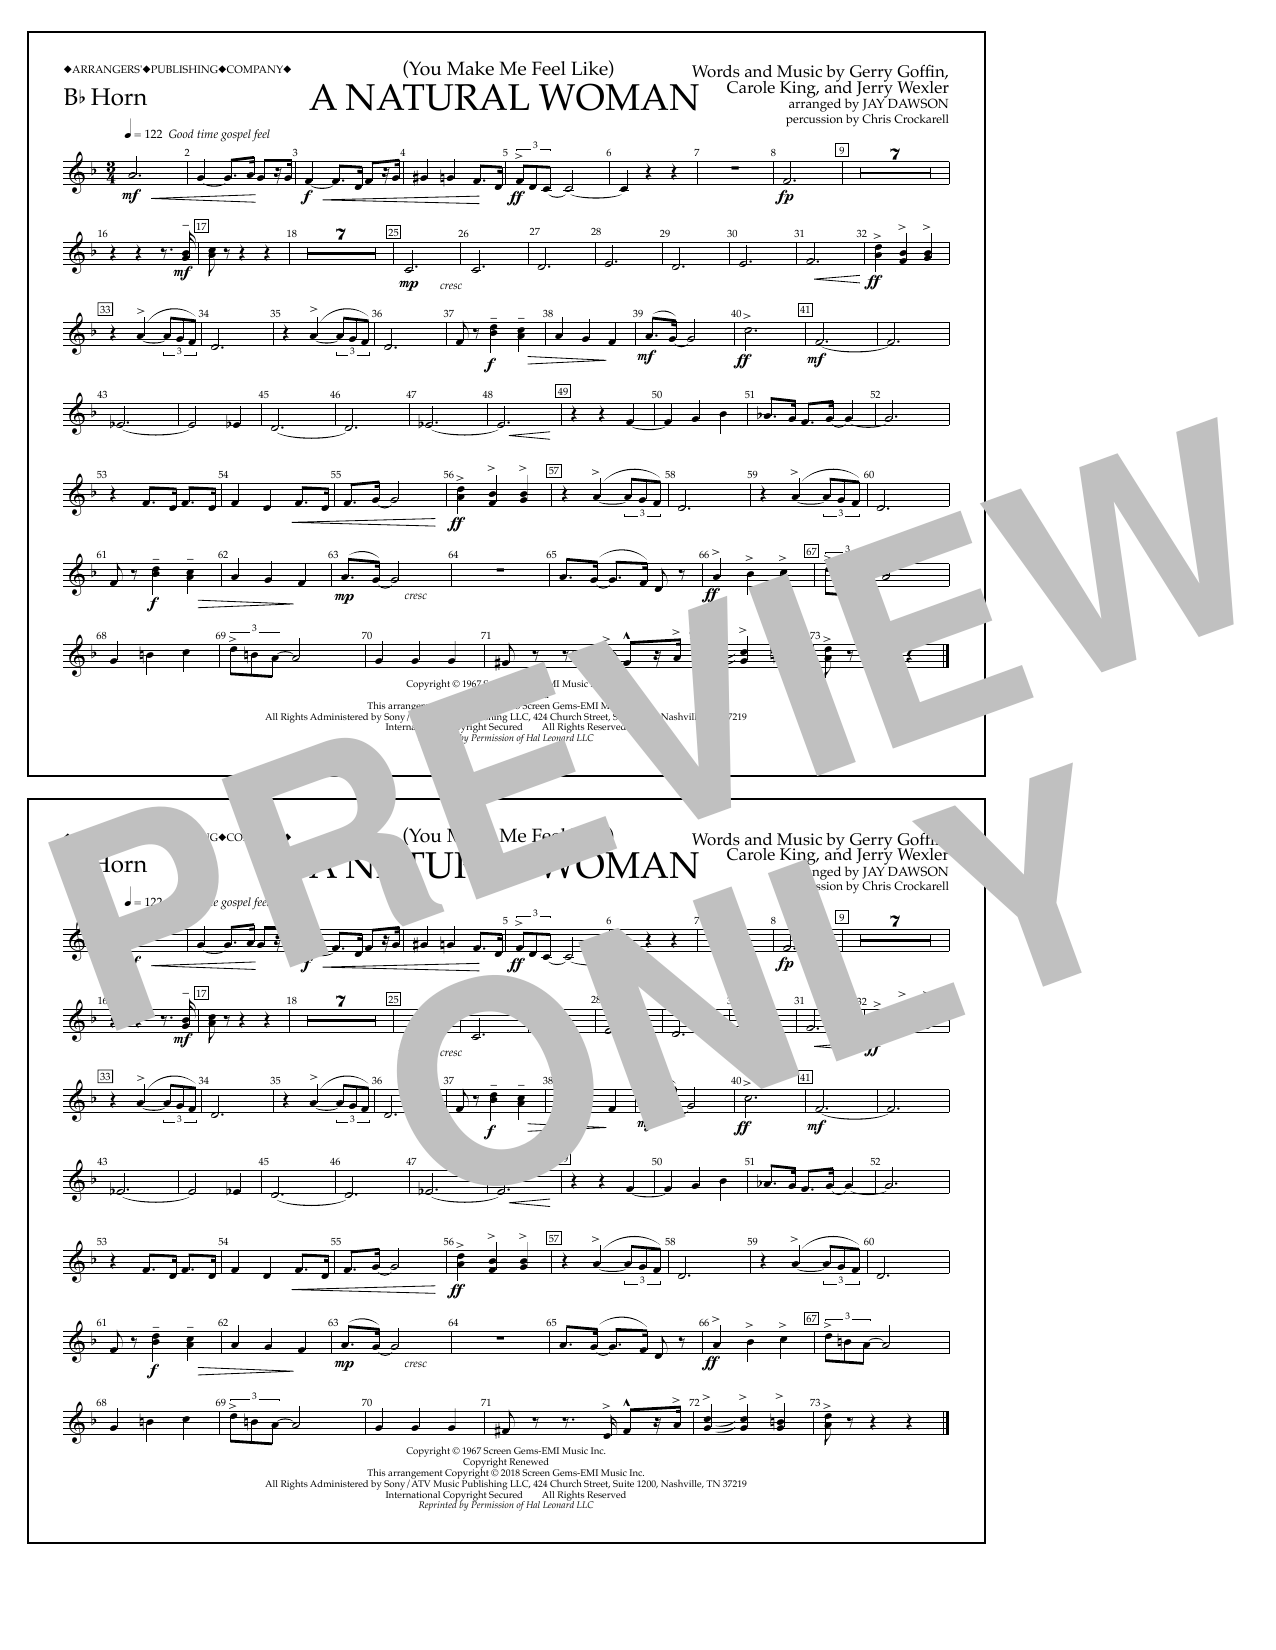 Download Aretha Franklin '(You Make Me Feel Like) A Natural Woman (arr. Jay Dawson) - Bb Horn' Digital Sheet Music Notes & Chords and start playing in minutes